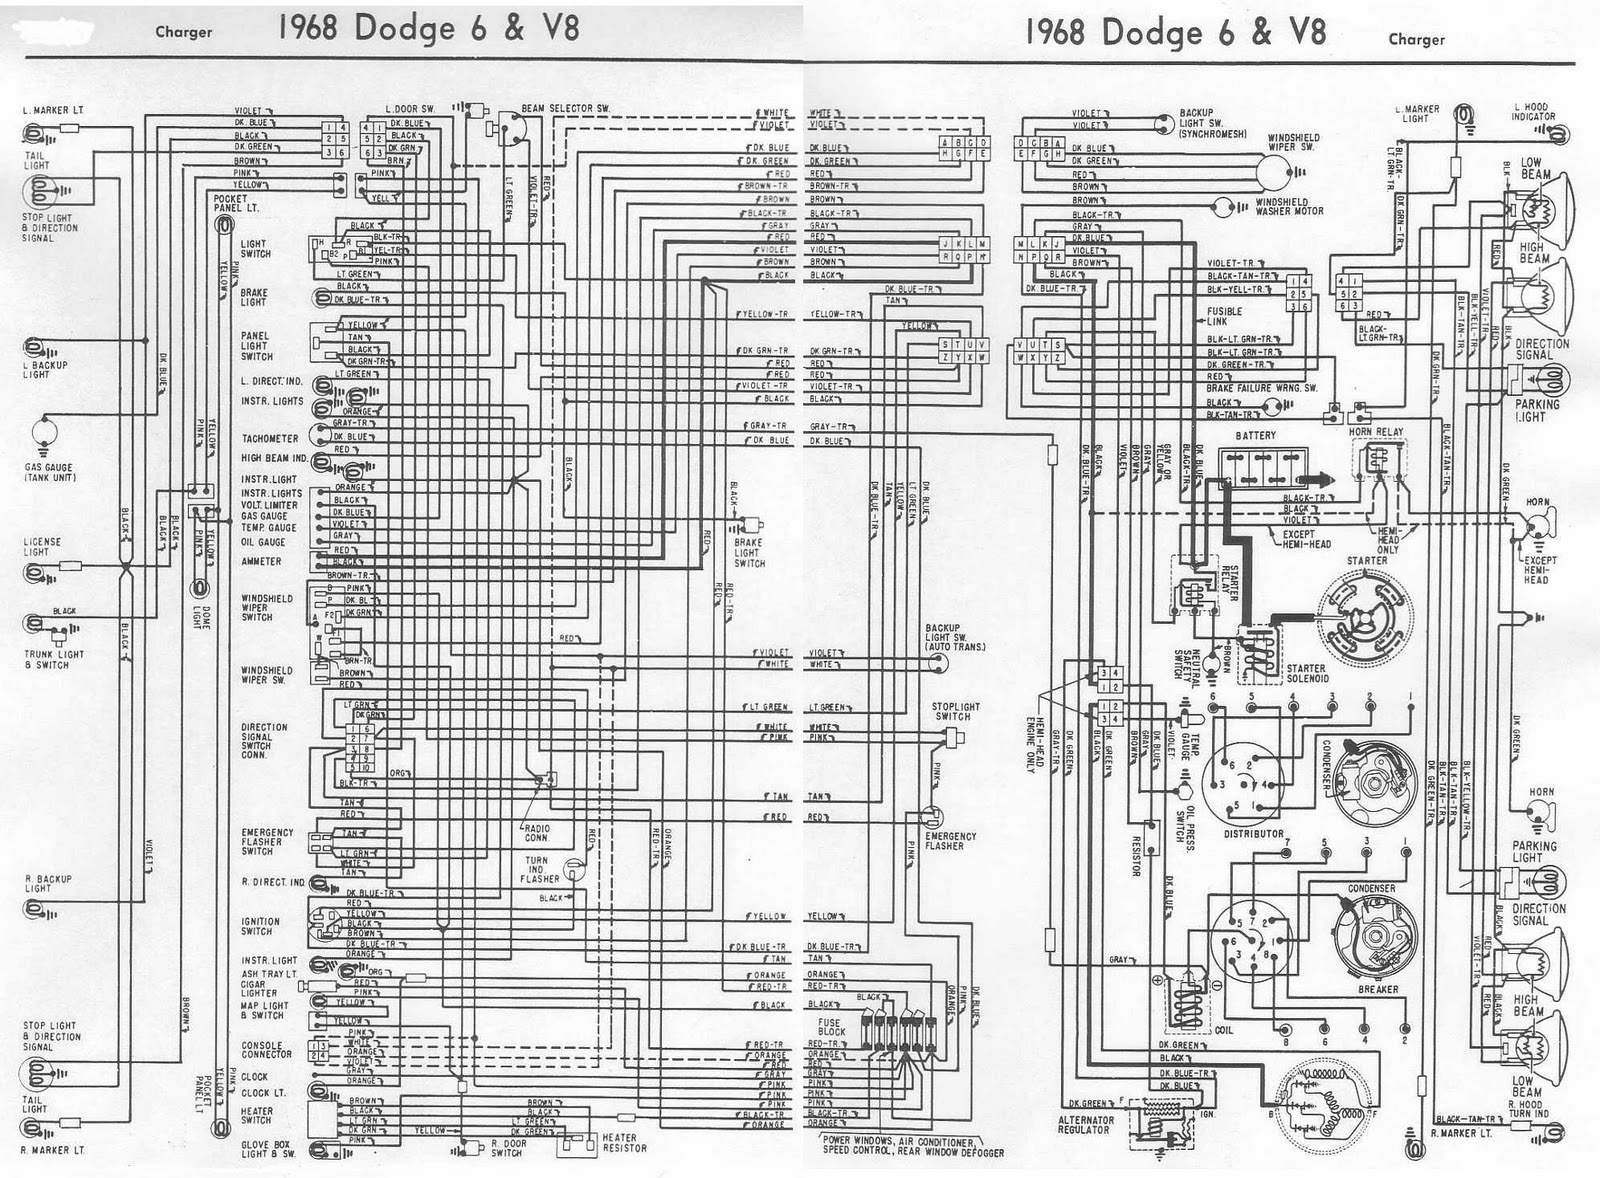 Dodge+Charger+1968+6+and+V8+Complete+Electrical+Wiring+Diagram dodge charger 1968 6 and v8 complete electrical wiring diagram dodge wiring diagram at bayanpartner.co